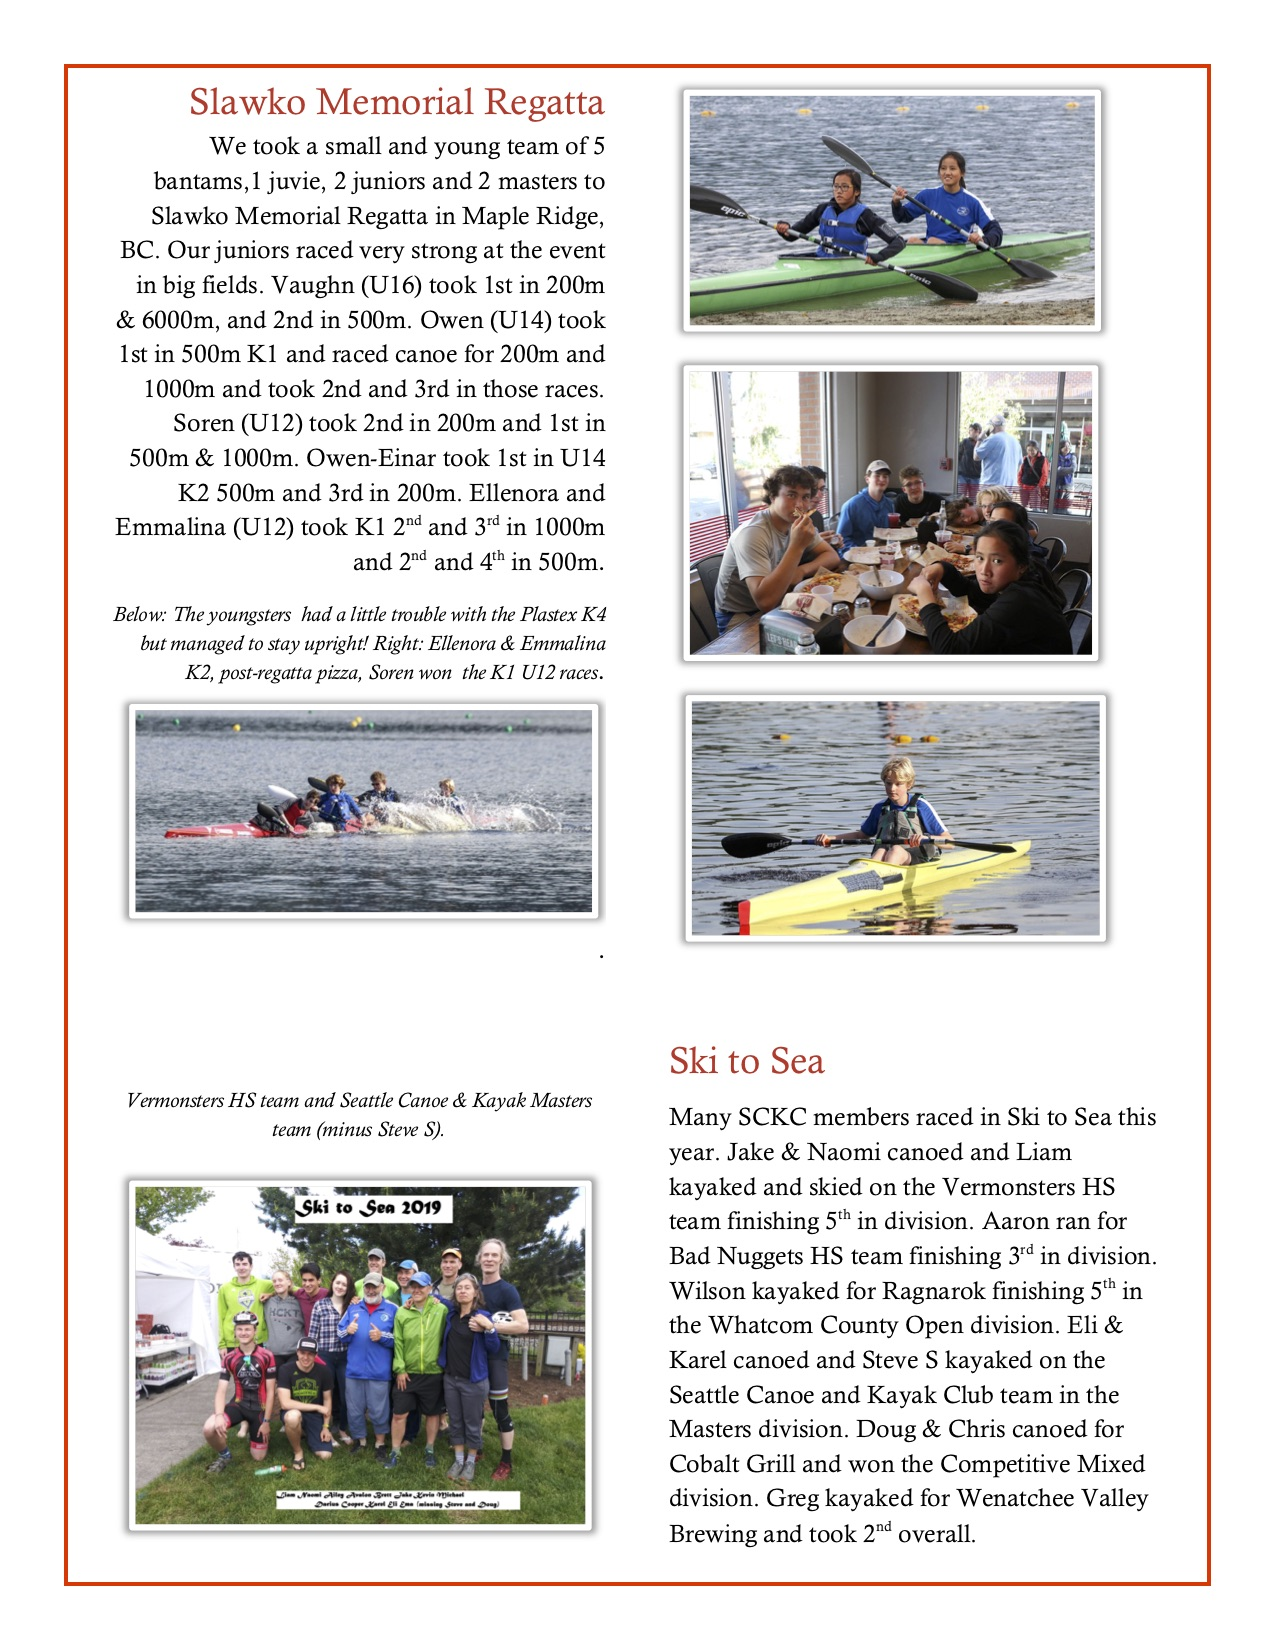 ◊ Latest News/Announcements ◊ Seattle Canoe and Kayak Club